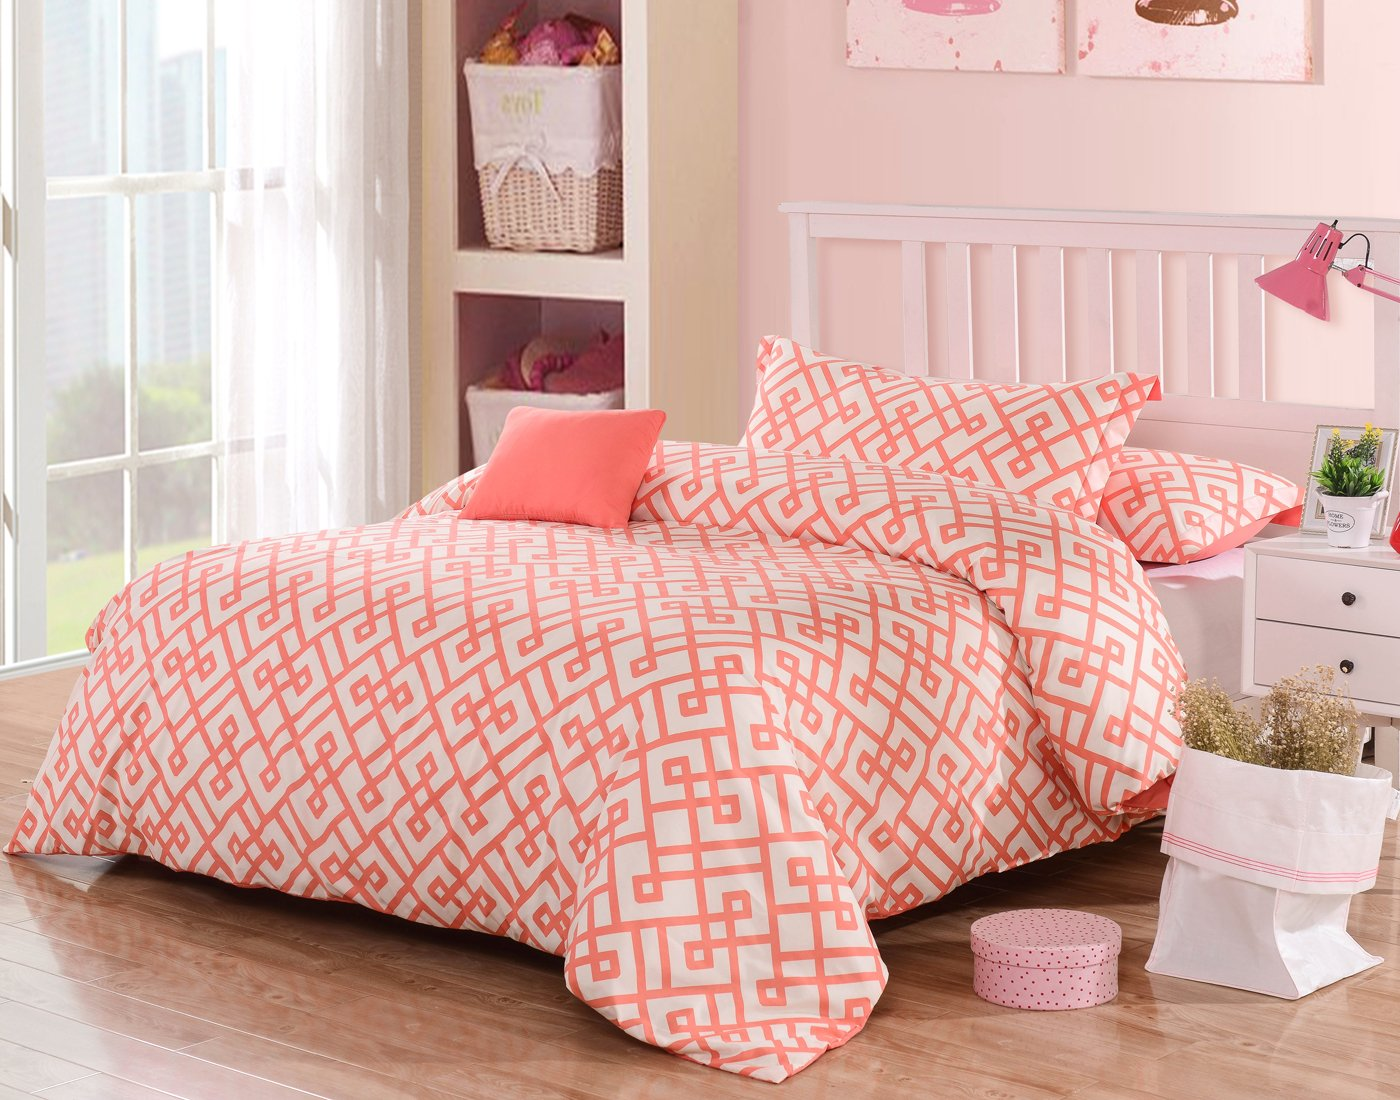 Honeymoon 1600T Brushed Microfiber 3PC Duvet Cover Set, Luxury Soft, Full/Queen - Coral